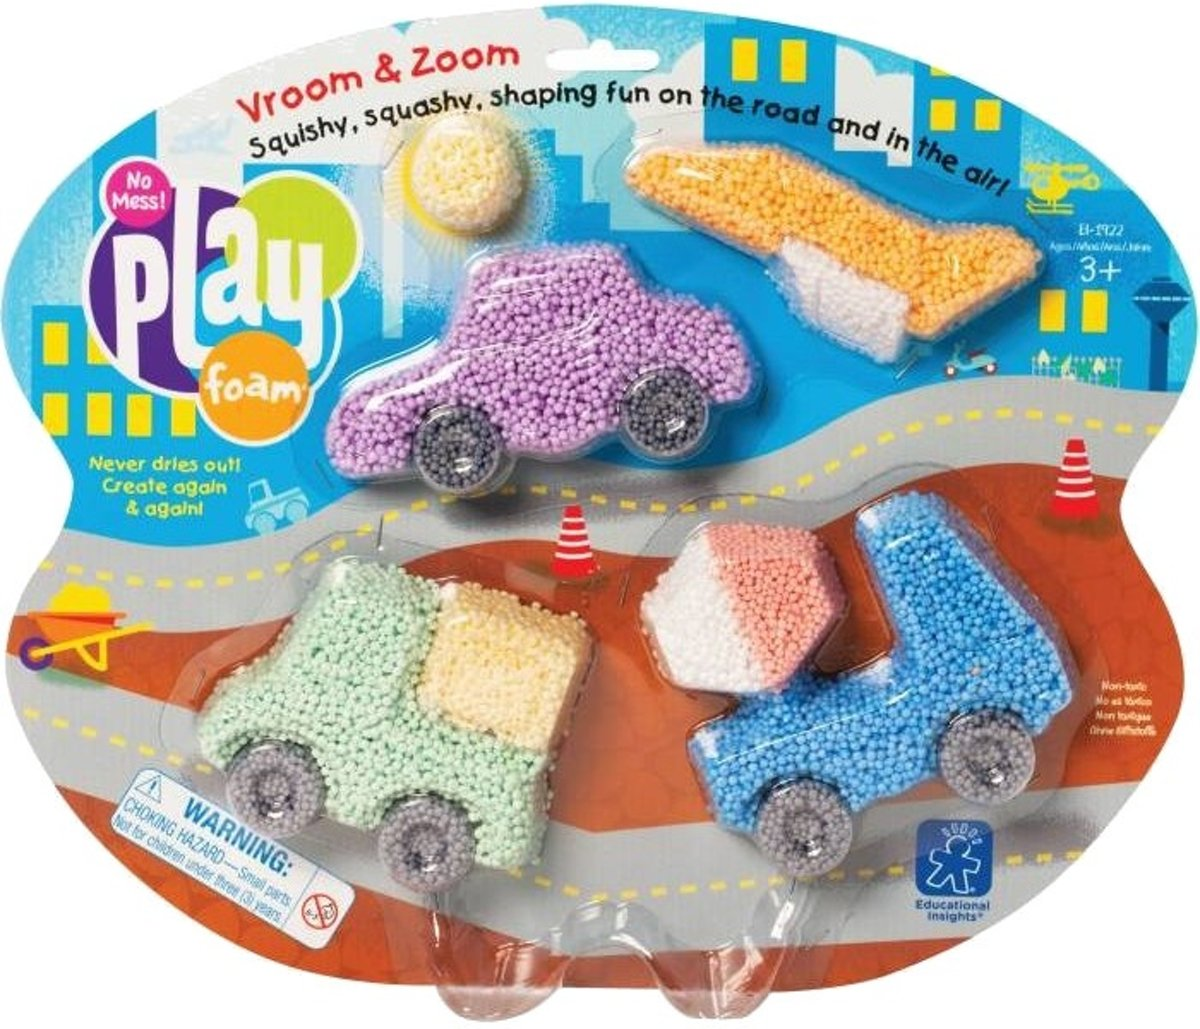 Playfoam Vroom & Zoom Learning Resources